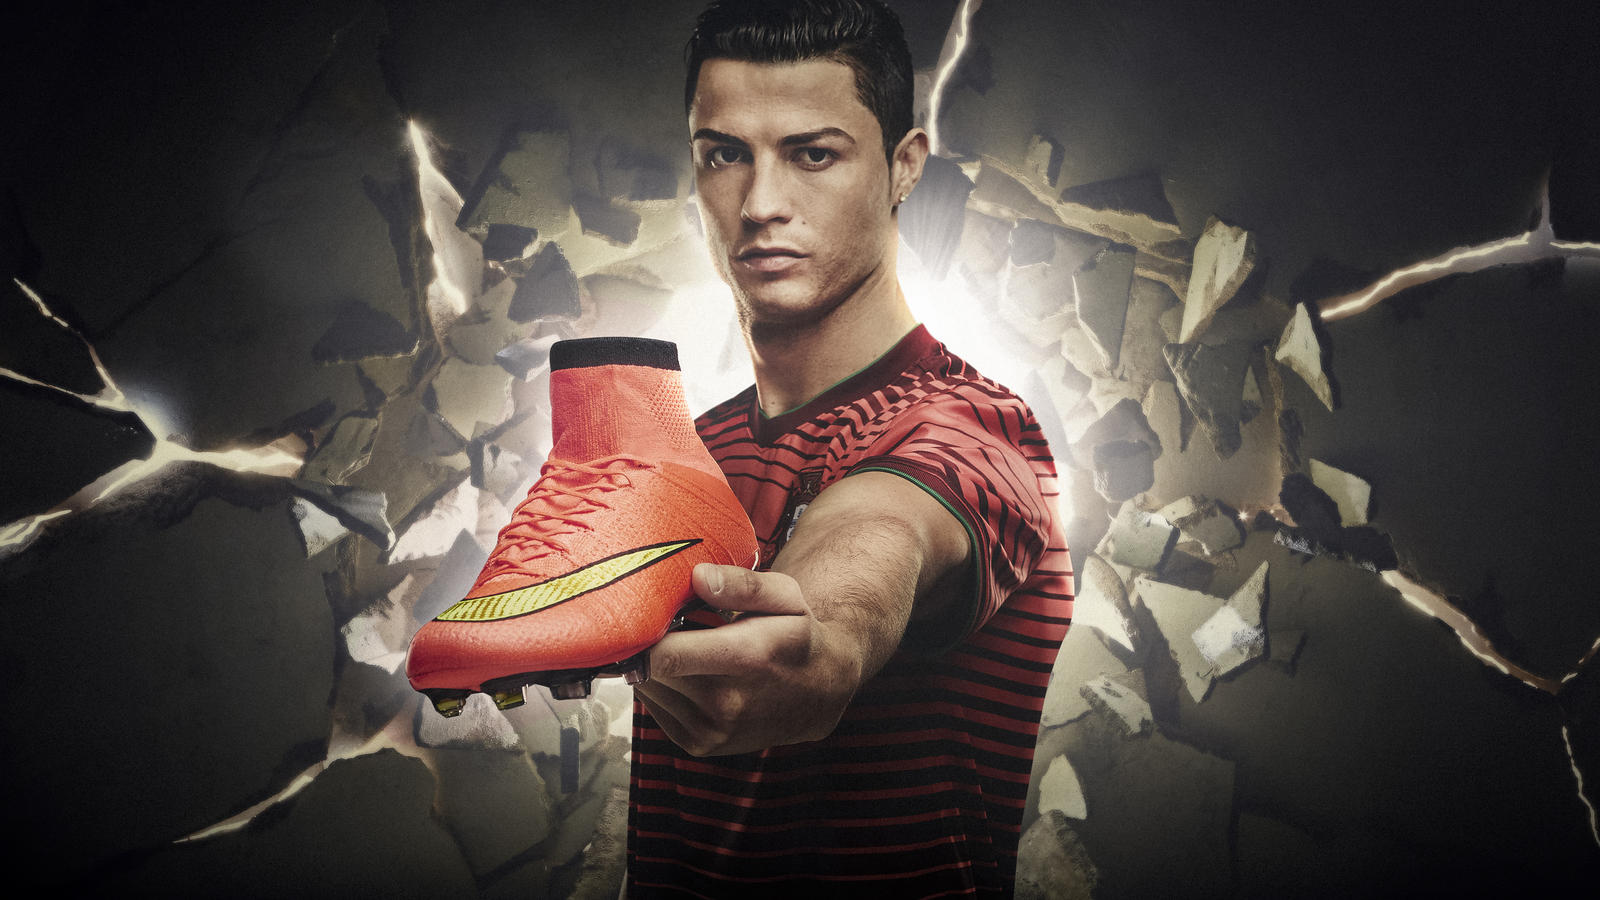 Mercurial Superfly Launch6 2014 04 24. cristianoronaldowithmercurialsuperfly 941db3f69dc38